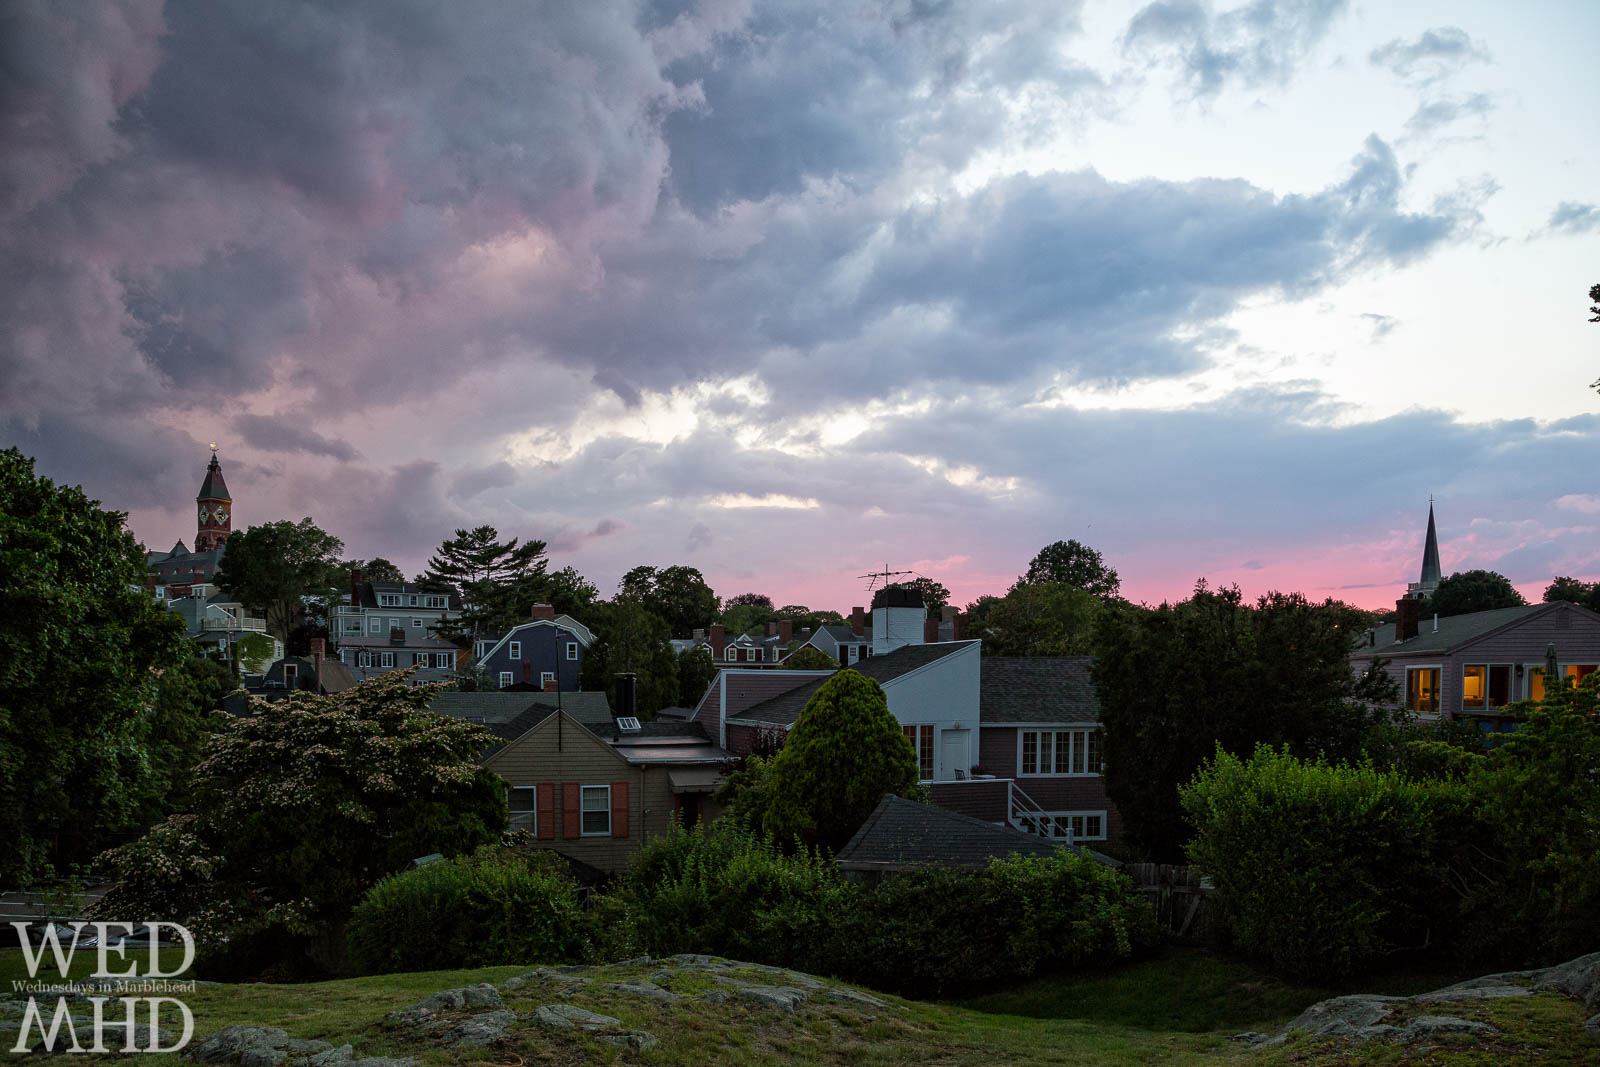 A coming storm casts pink hues at the horizon and purple light in the clouds